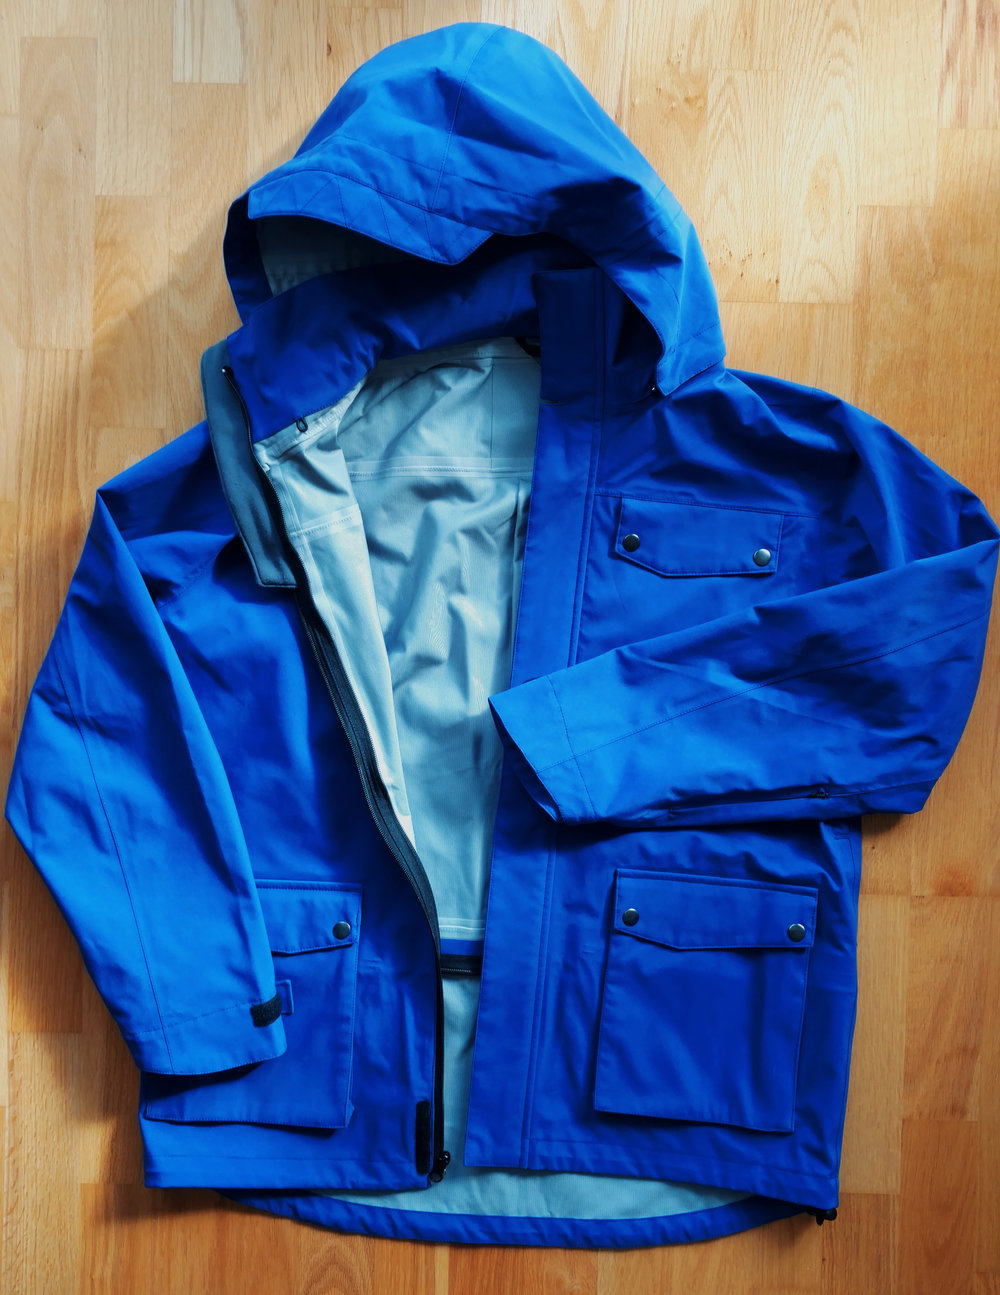 Men's Outer 3L Protosample 2